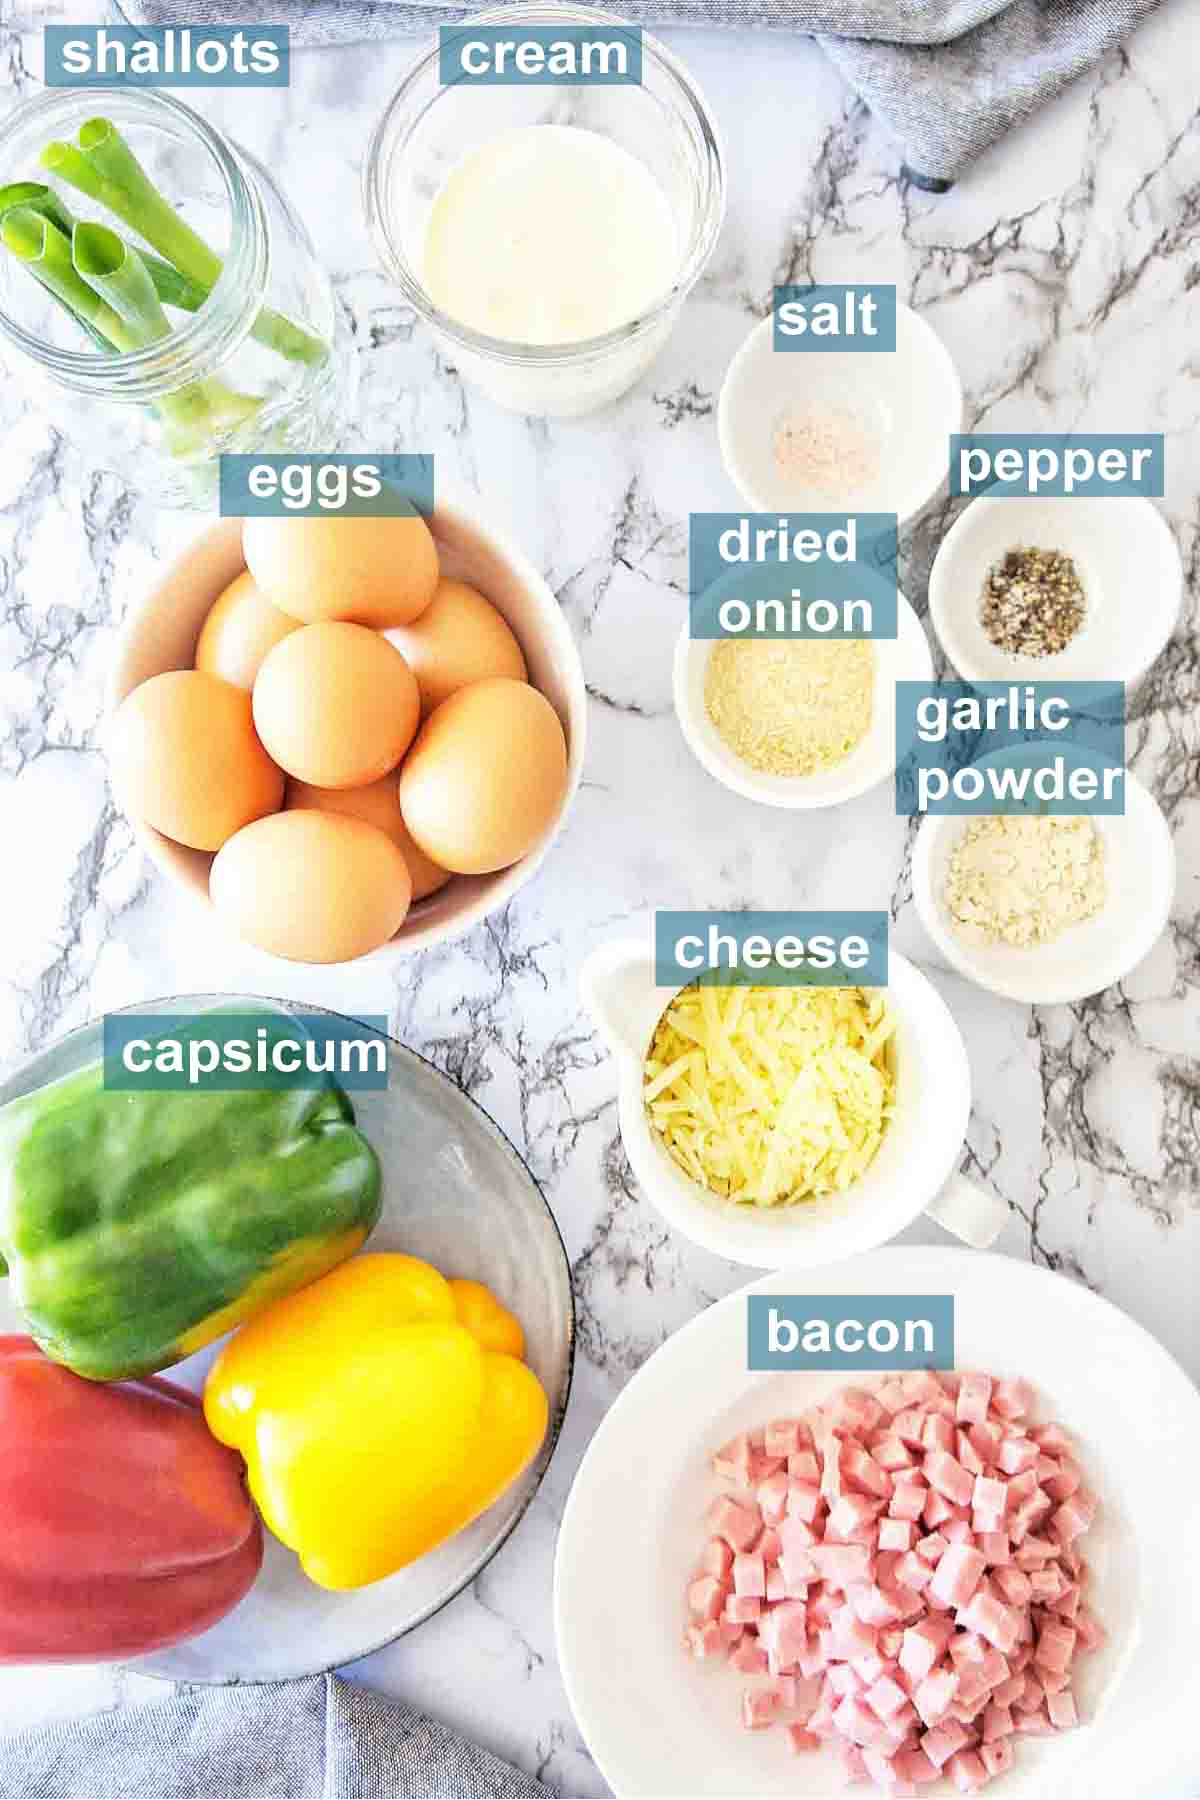 Bacon and egg slice ingredients